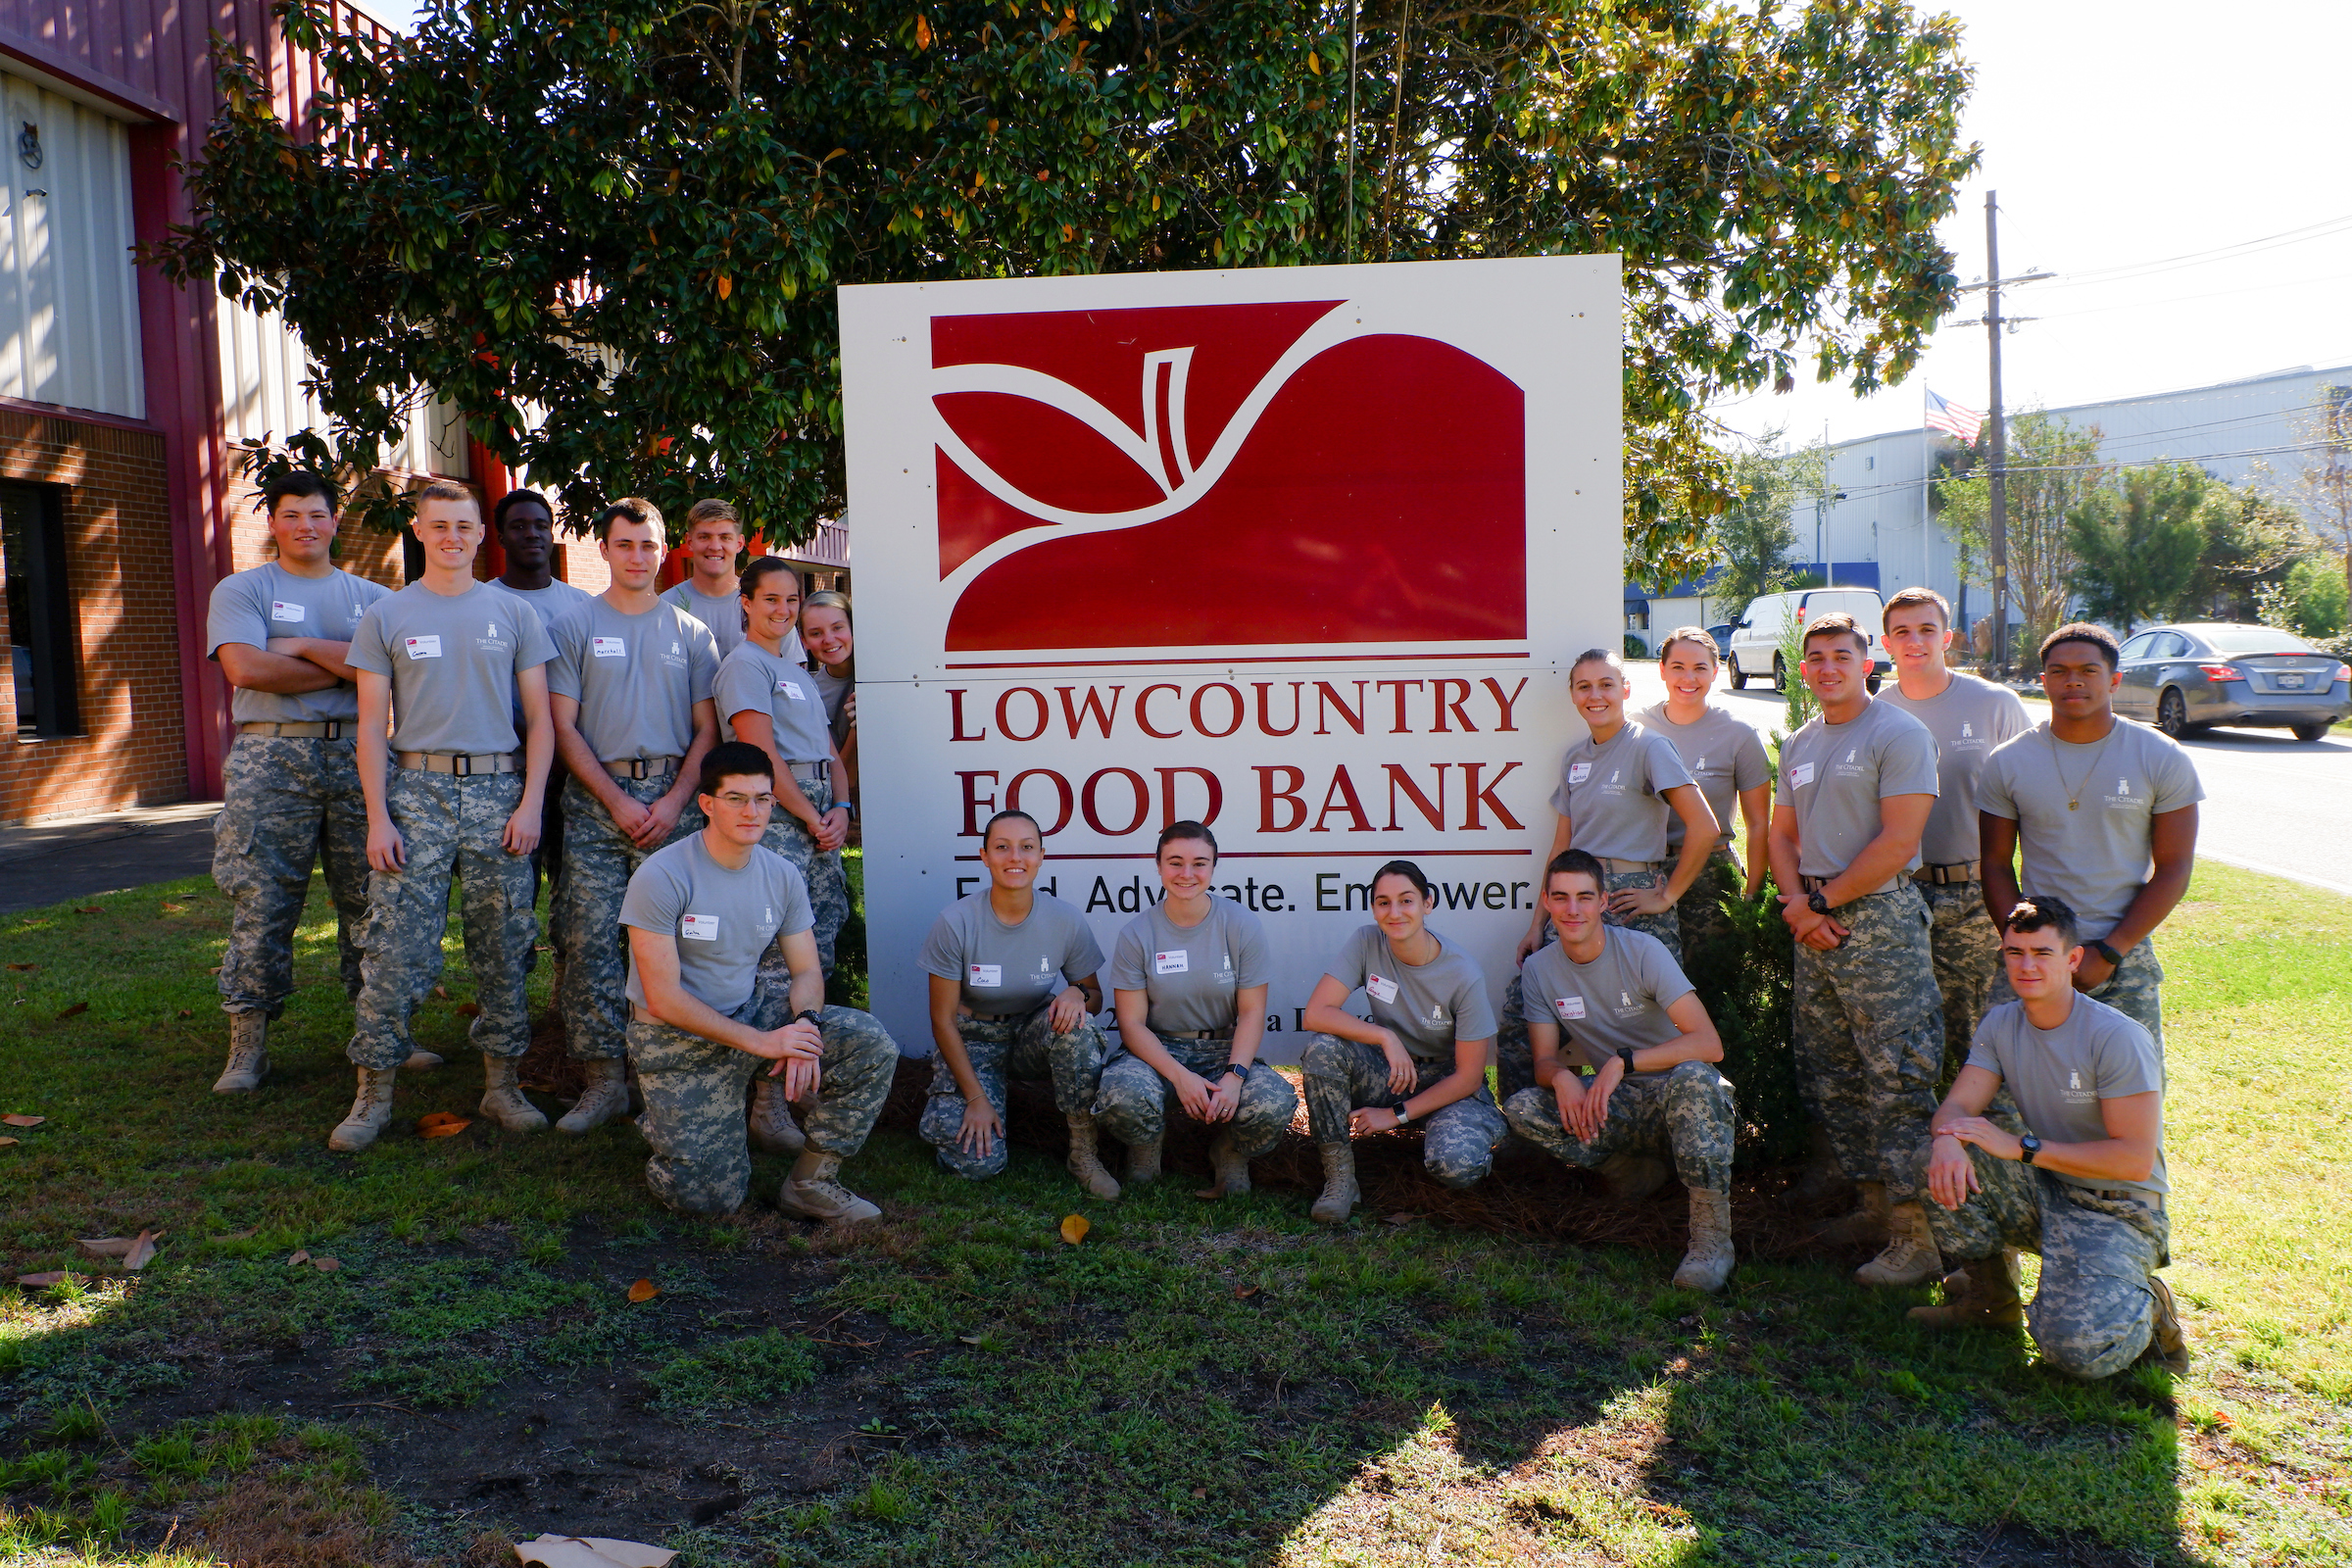 Lowcountry Food Bank